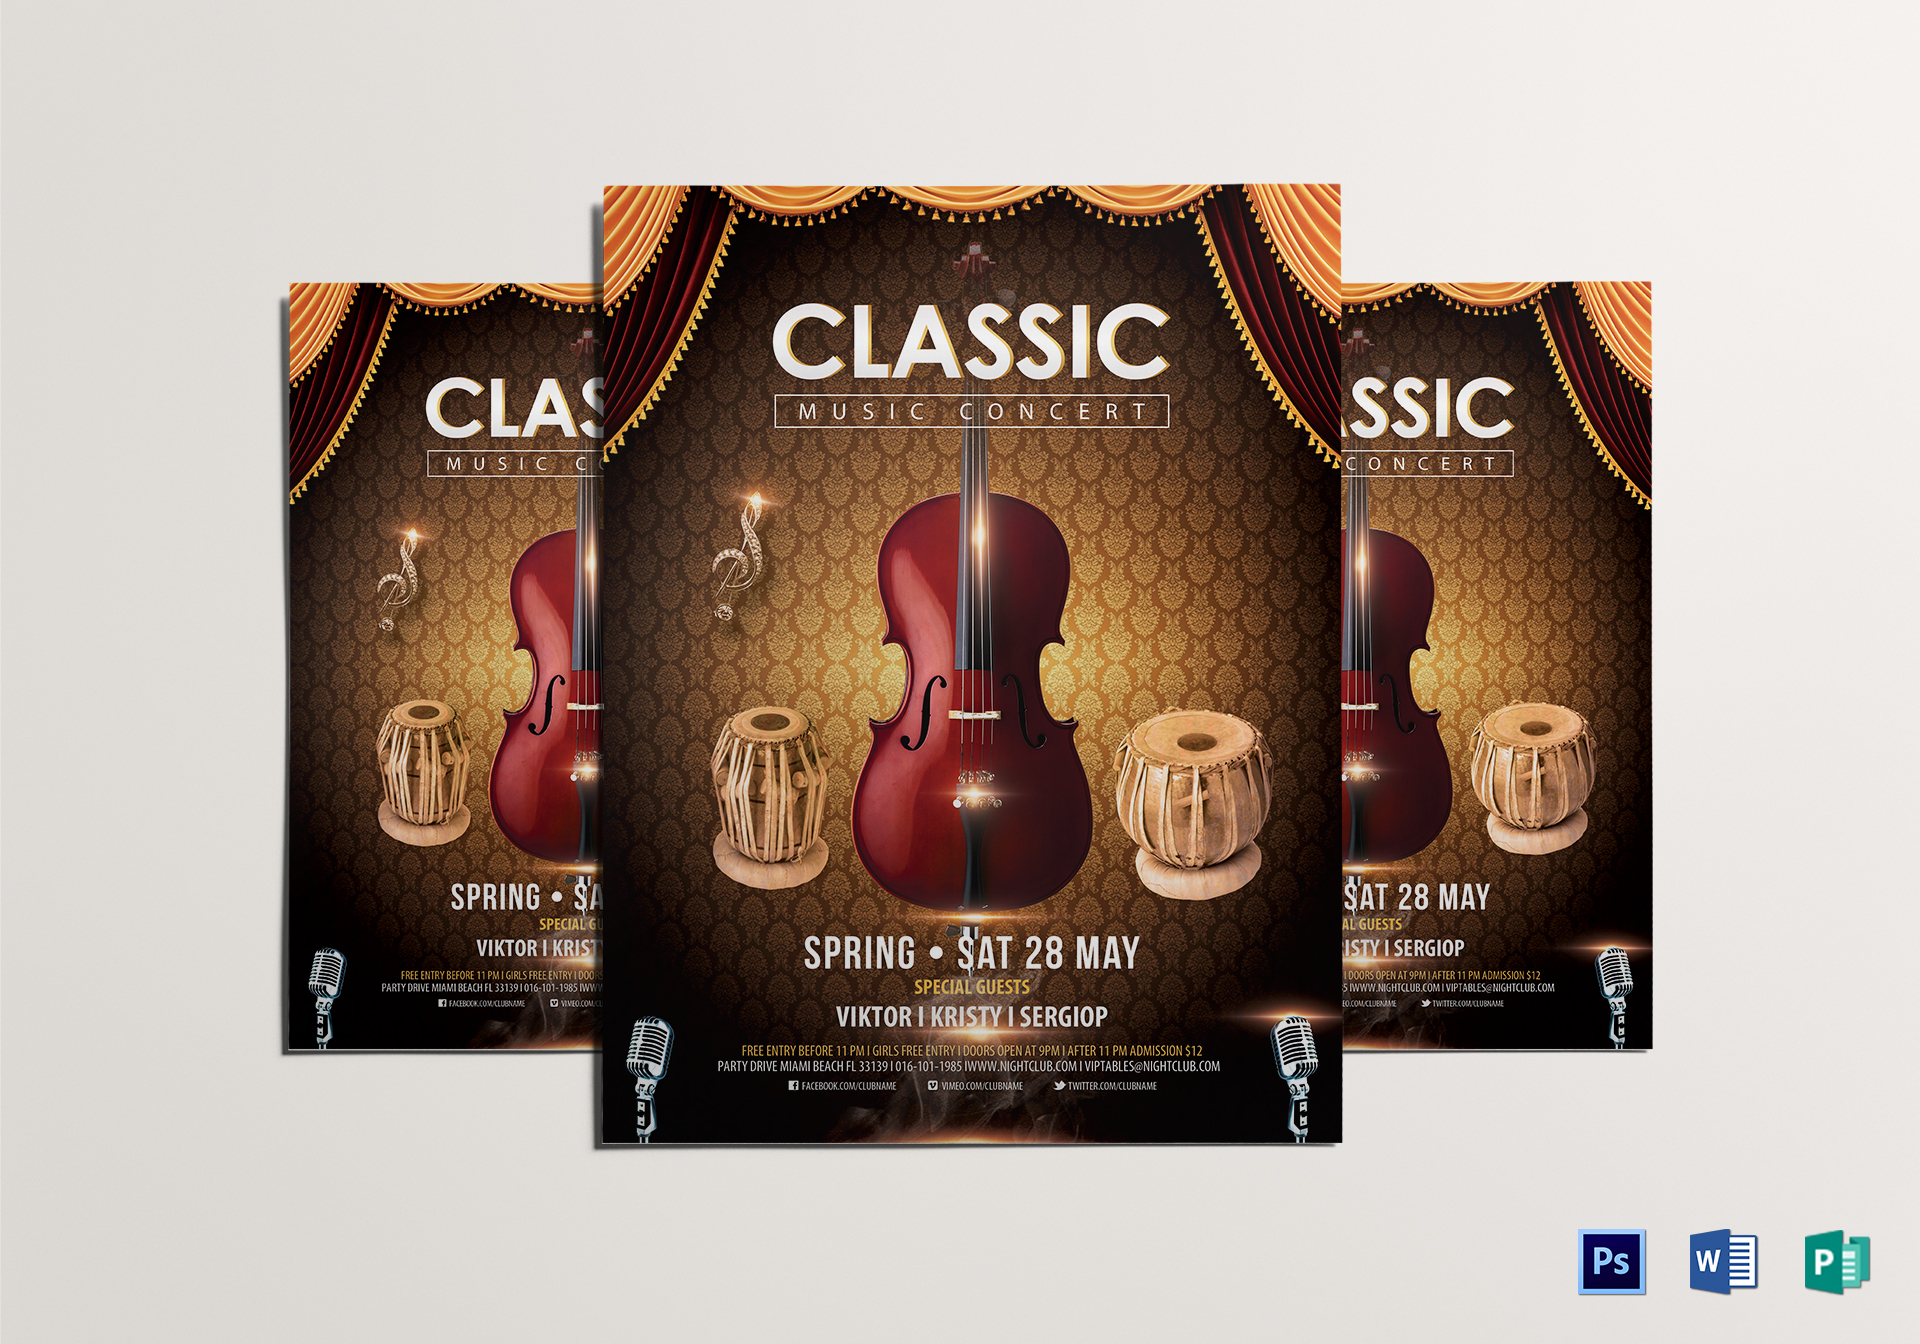 Classic Music Concert Flyer Design Template In Psd Word Publisher